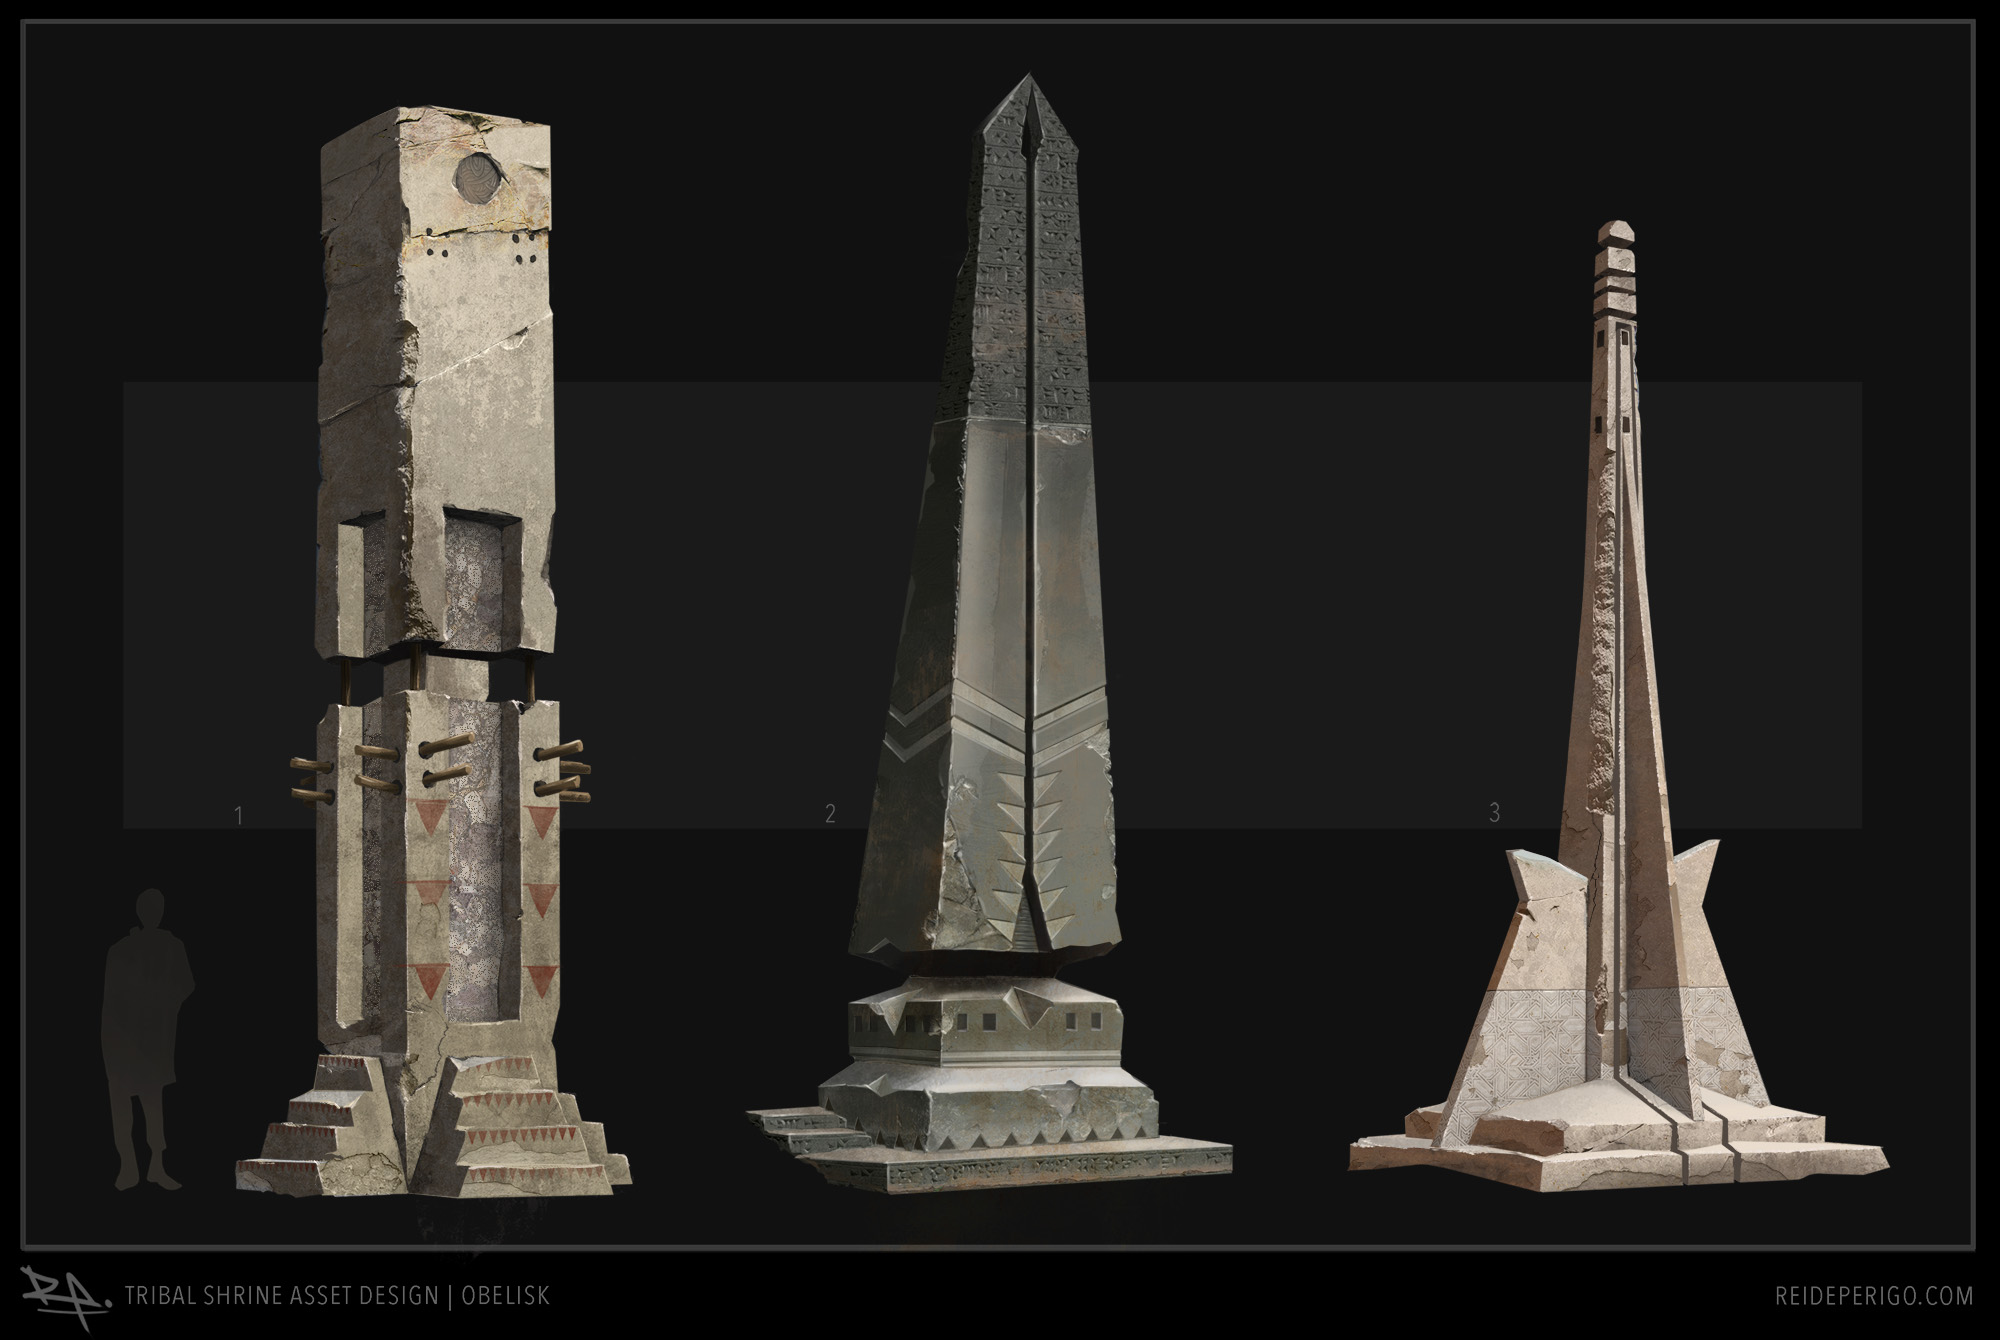 Environment asset refinement for clear design intention of shape, scale, material, and wear.